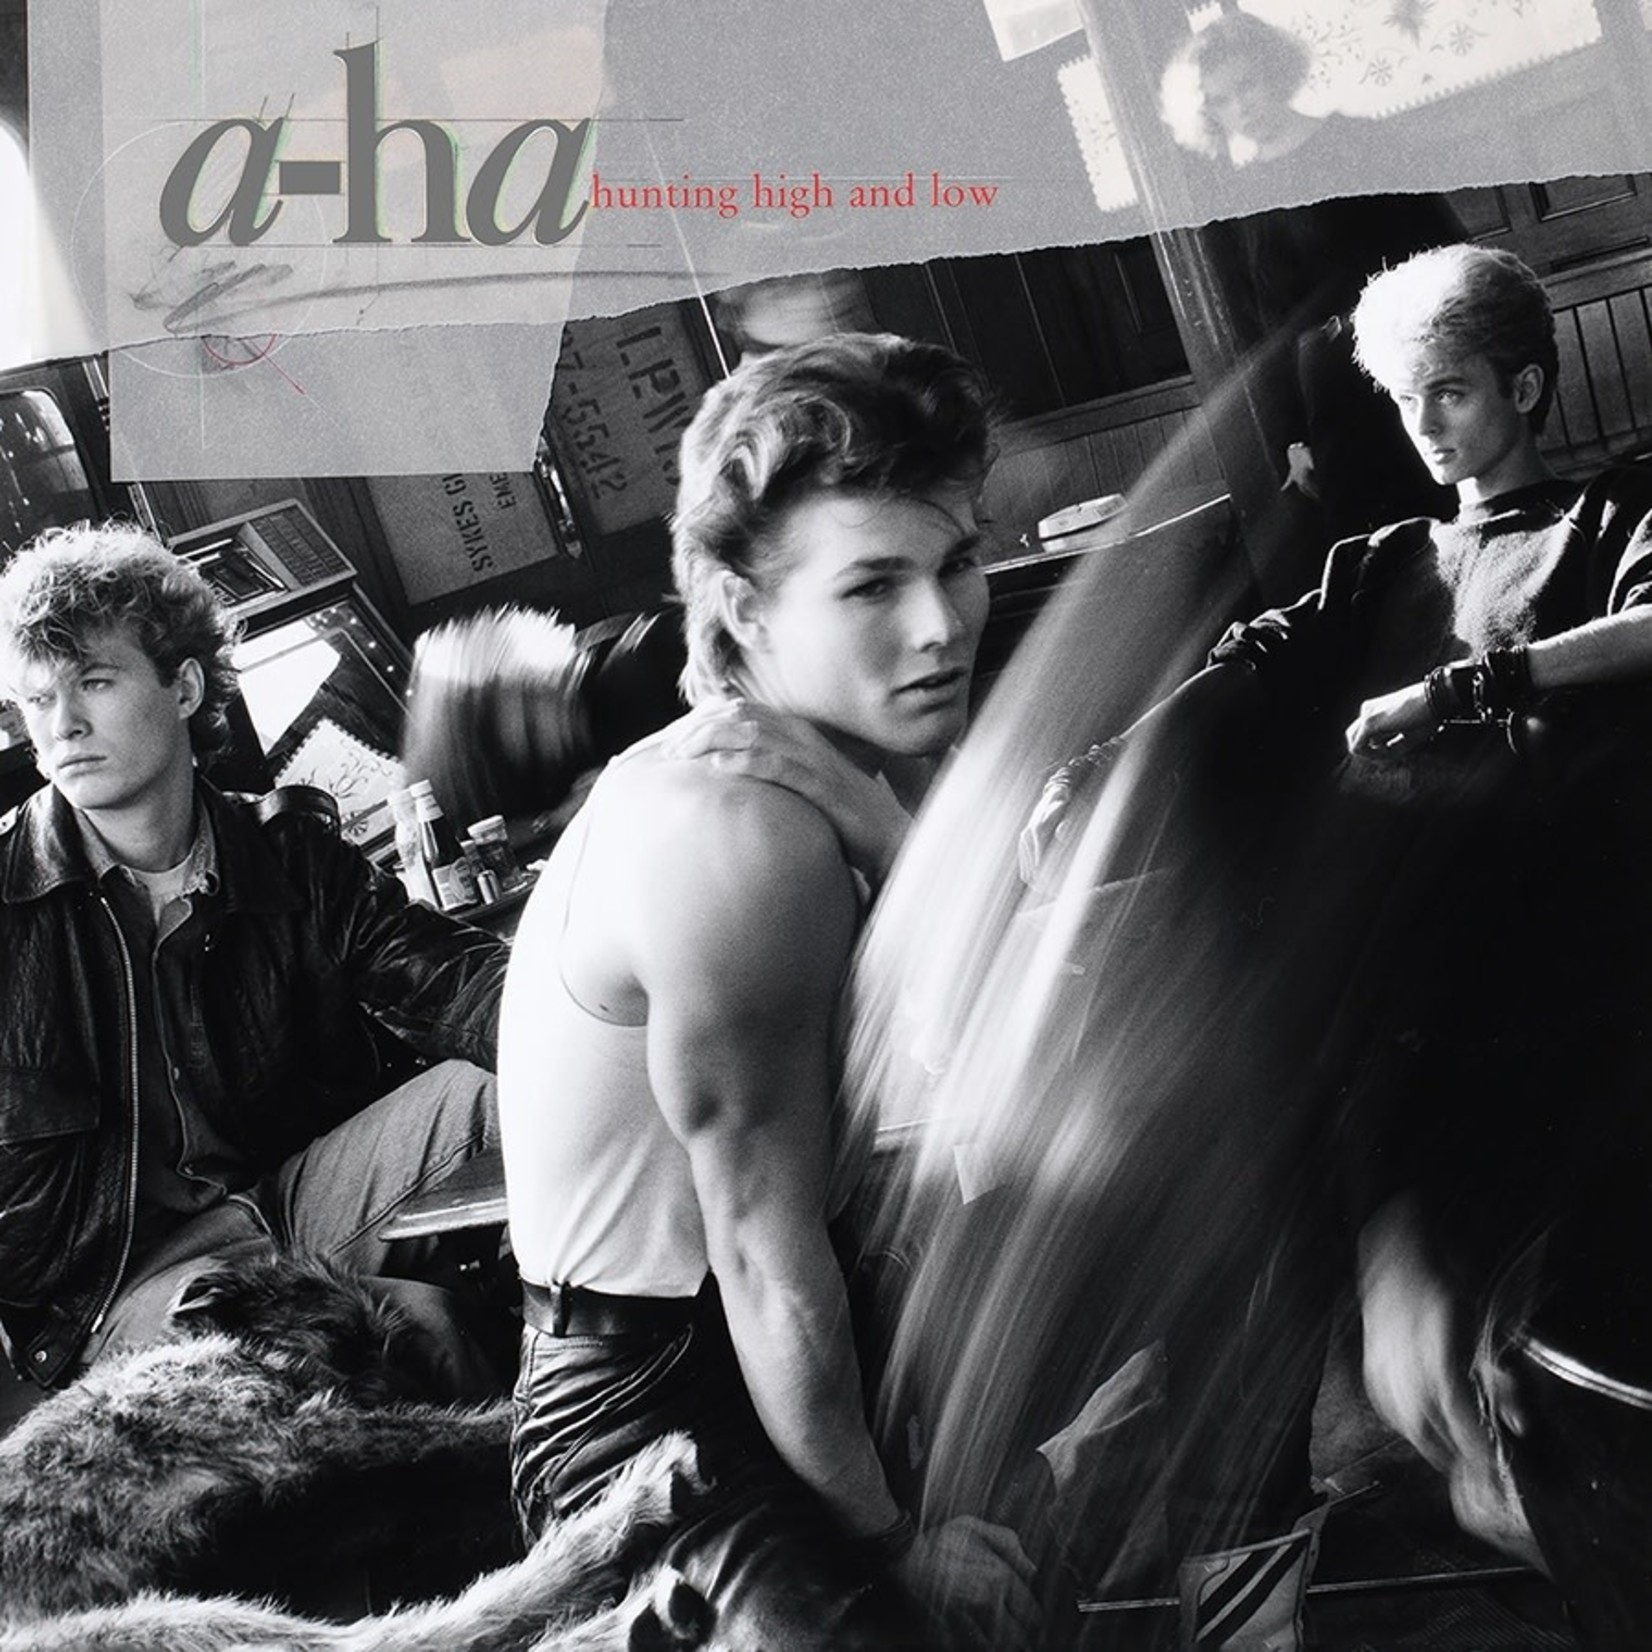 [Vintage] A-Ha: Hunting High and Low ('Take on Me')